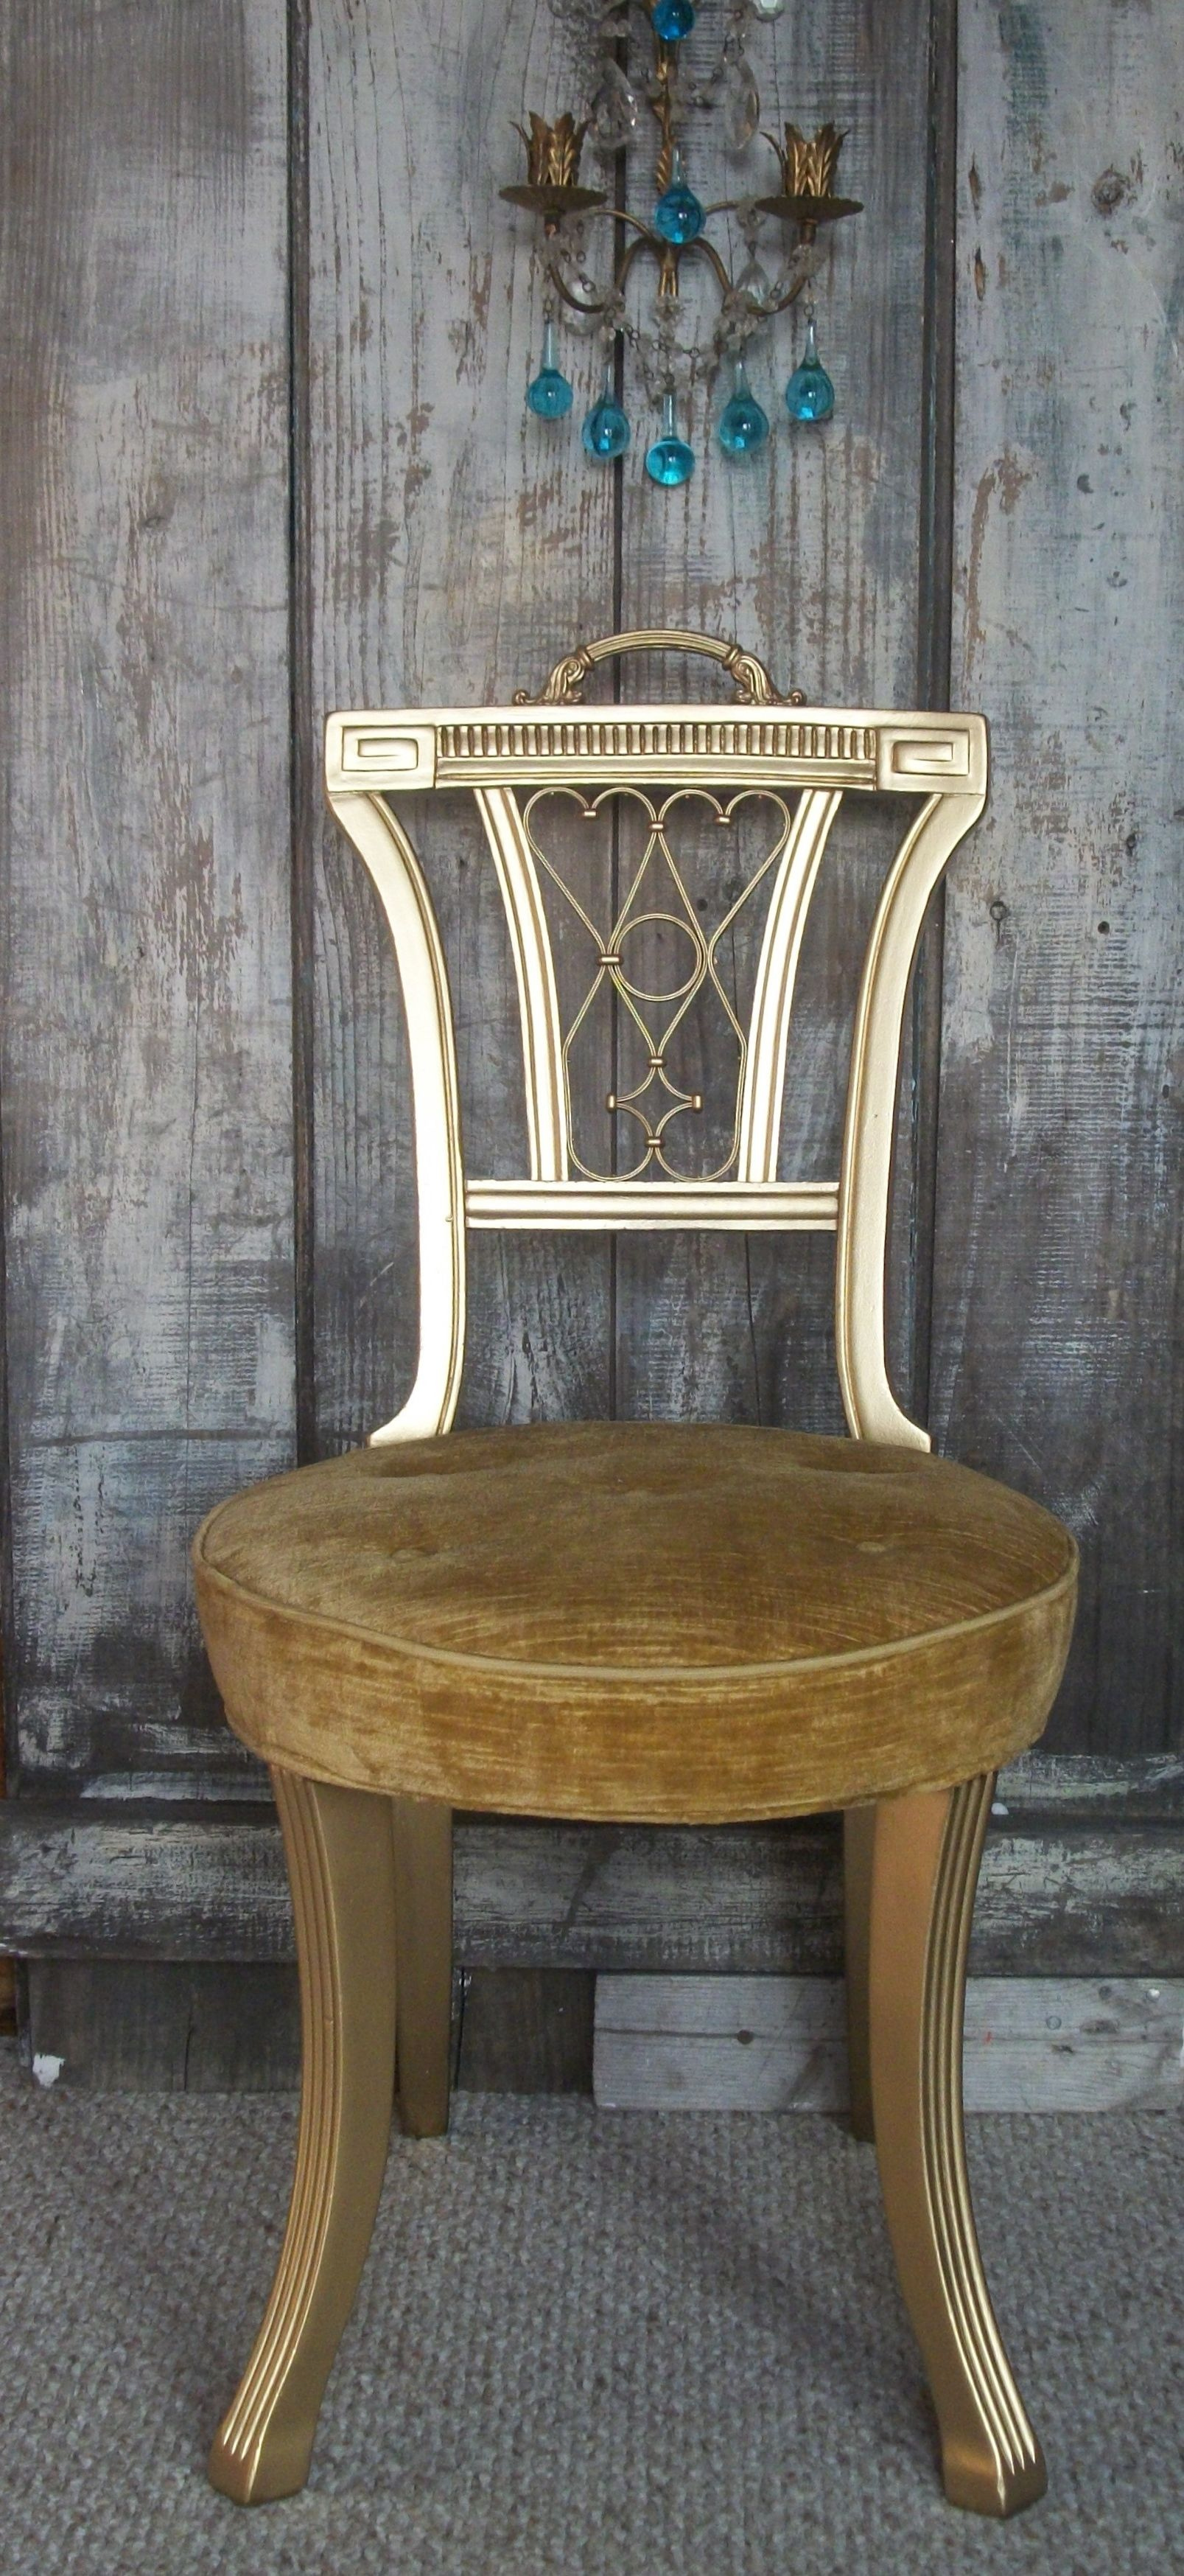 Vintage Hollywood Regency Gold Chair Painted gilded gold glam